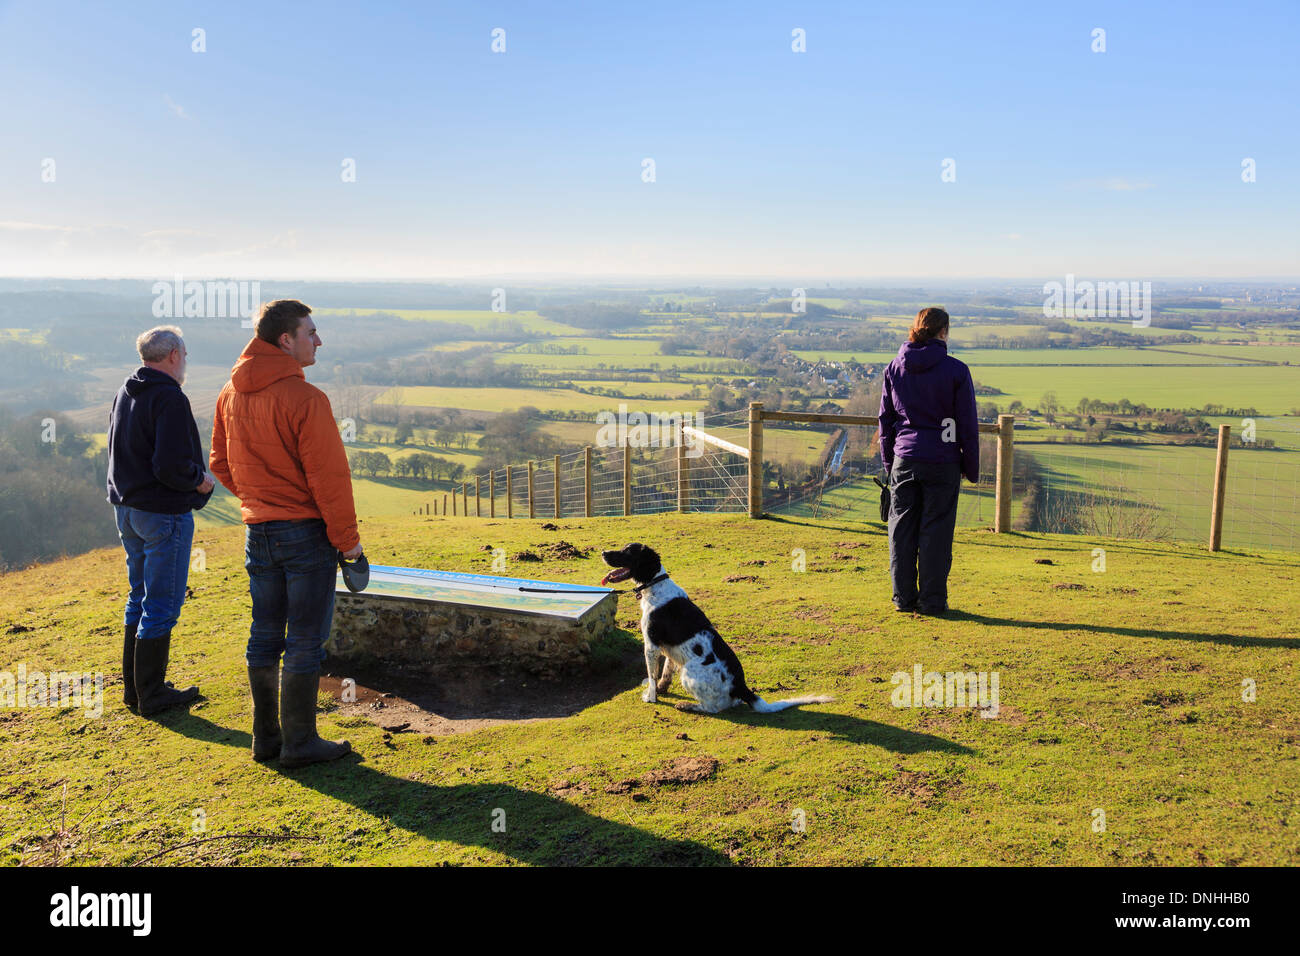 People with dog looking at a view west from viewpoint in Wye National Nature Reserve on North Downs Way in hills near Ashford Kent England UK Britain - Stock Image